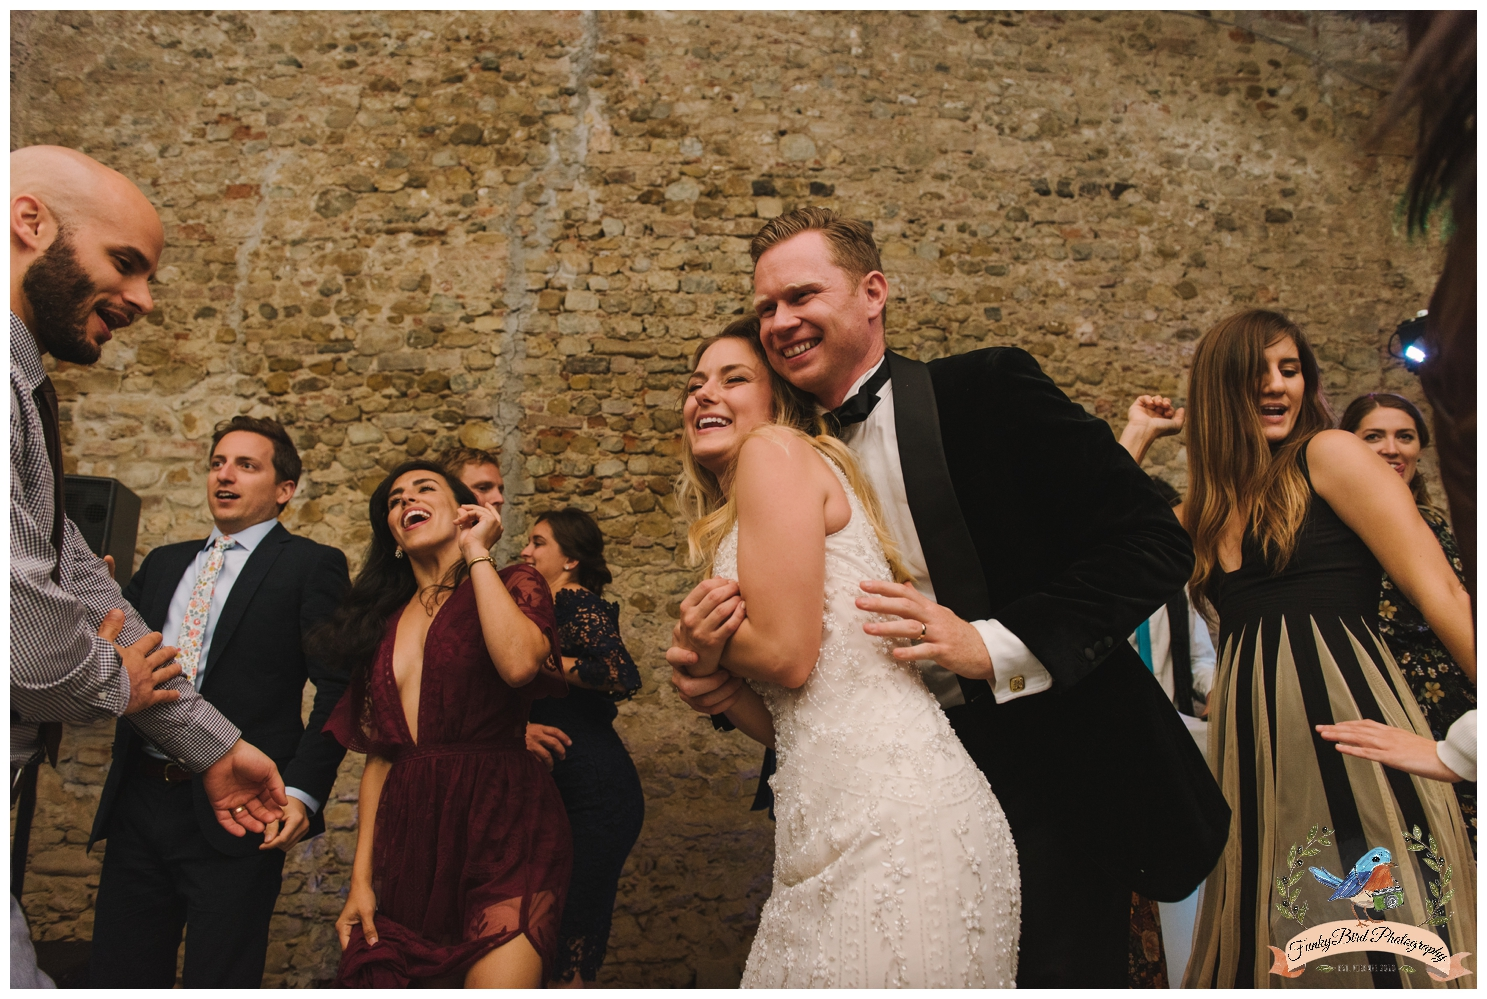 Wedding_Photographer_Tuscany_Italy_0089.jpg